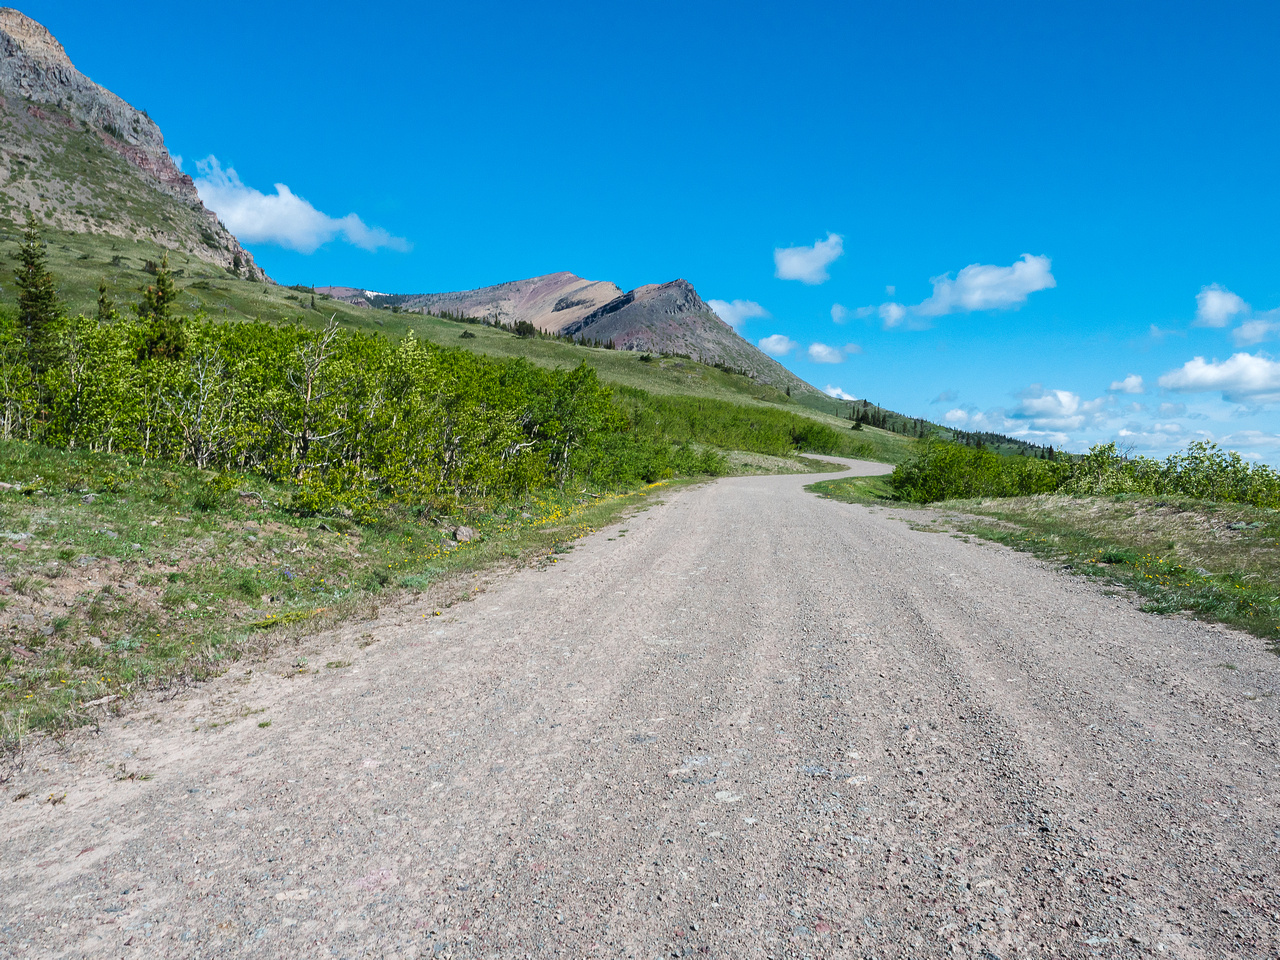 We followed this road until it curved sharply left where we found an excellent trail leading to Prairie Bluff - visible at center here.